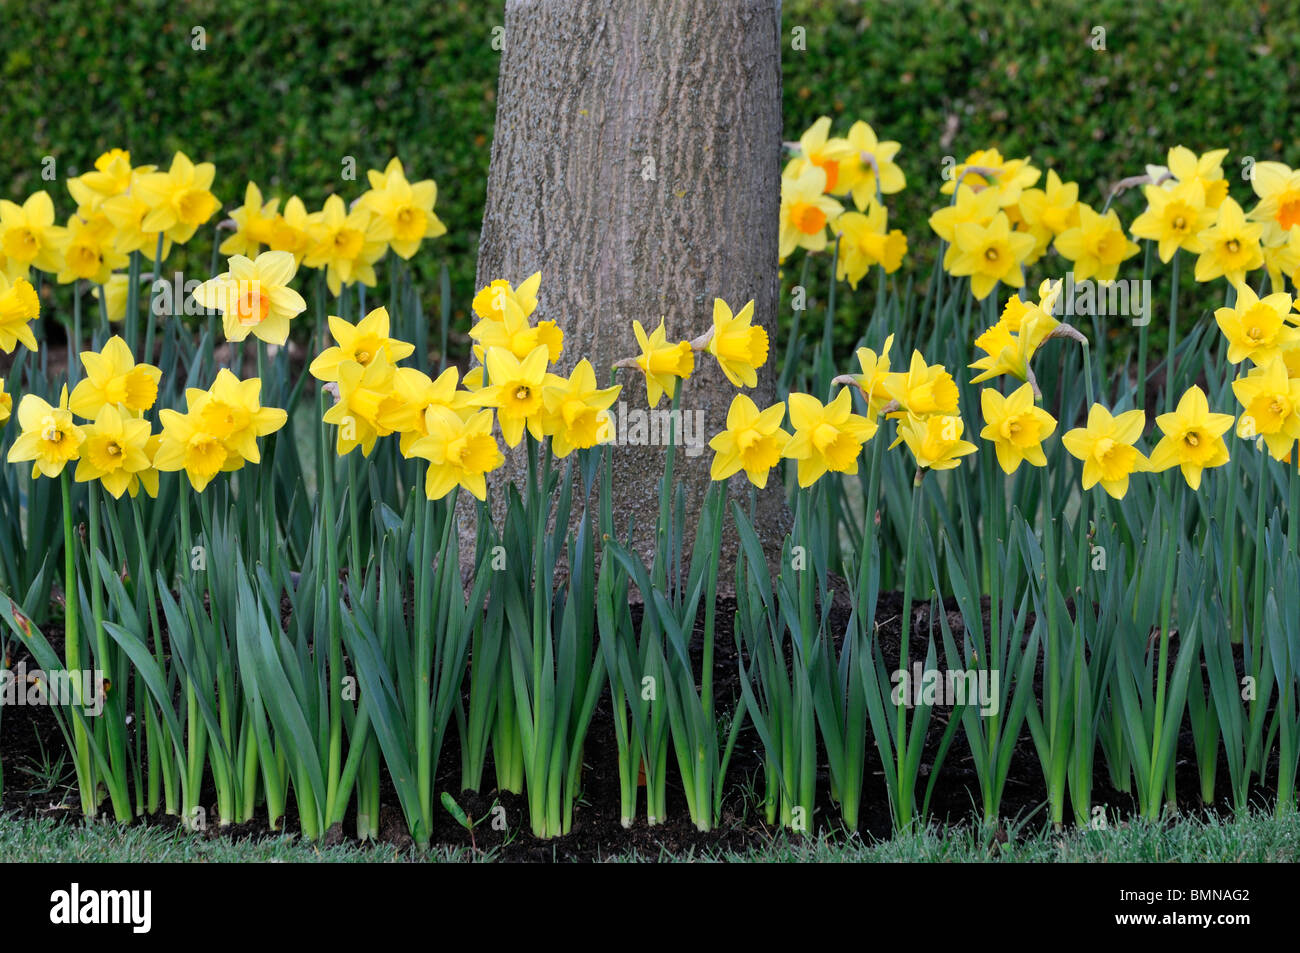 full circle ring of daffodils surround surrounding encircled